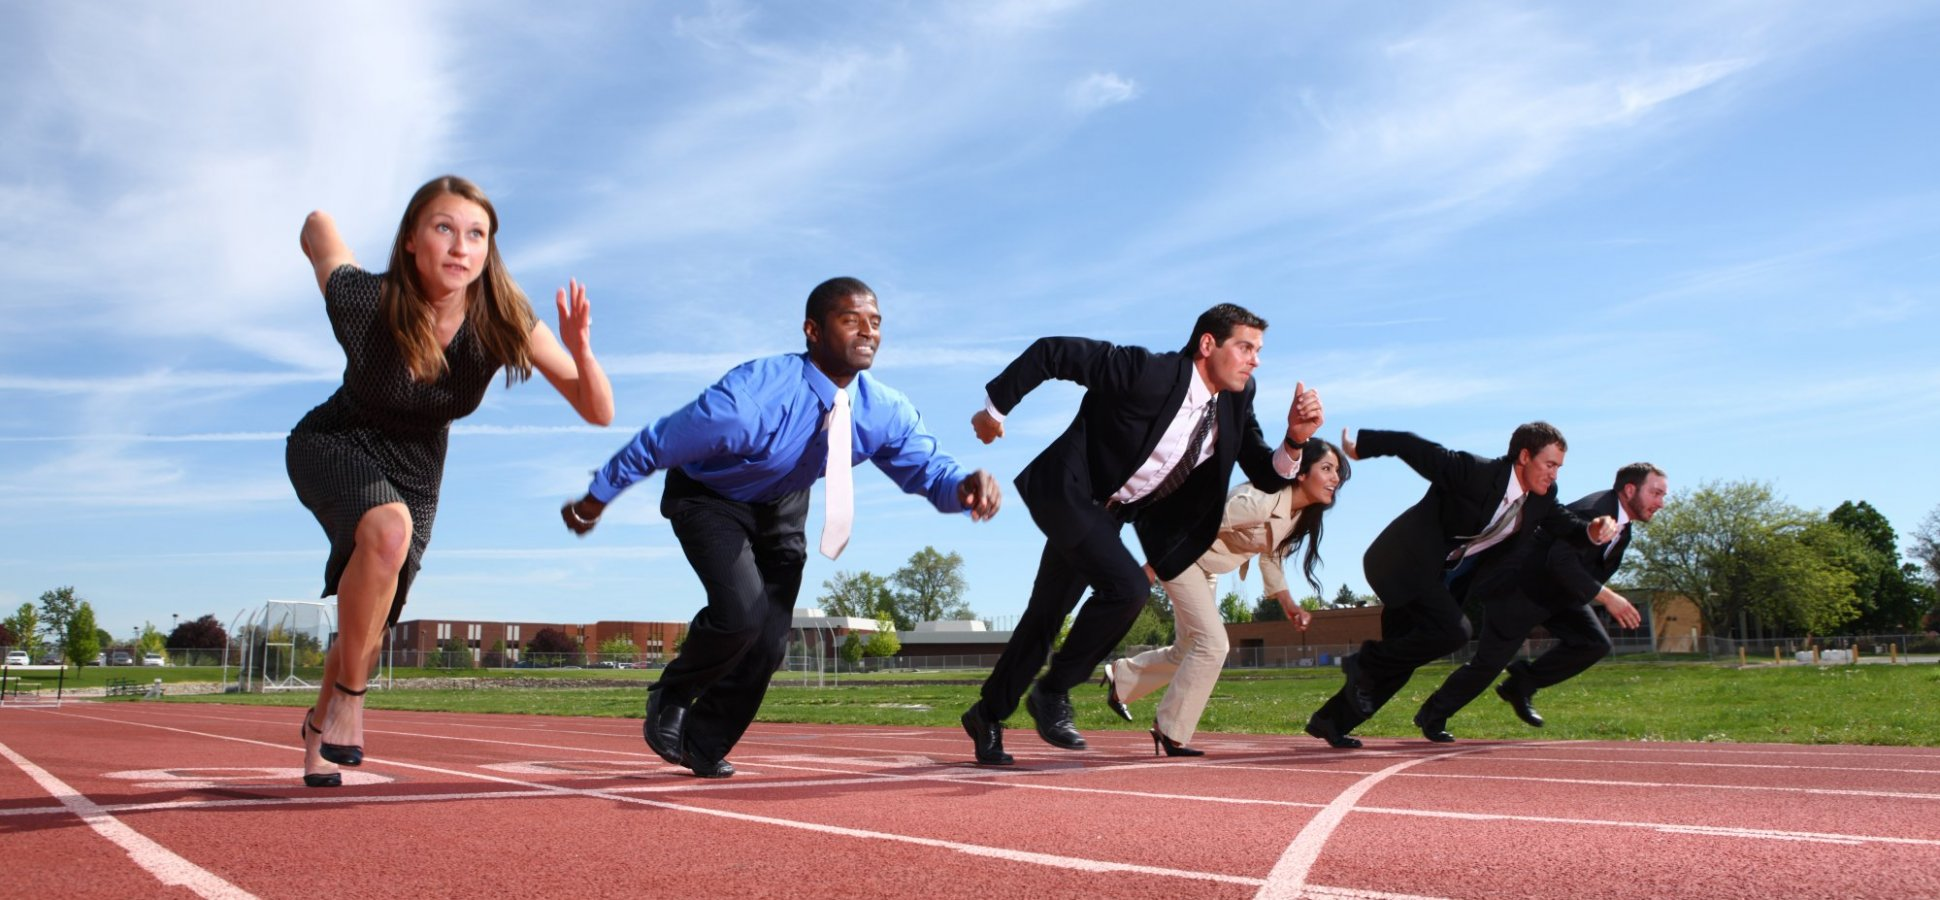 3 Ways to Make Sure Your Business Outperforms Its Competitors